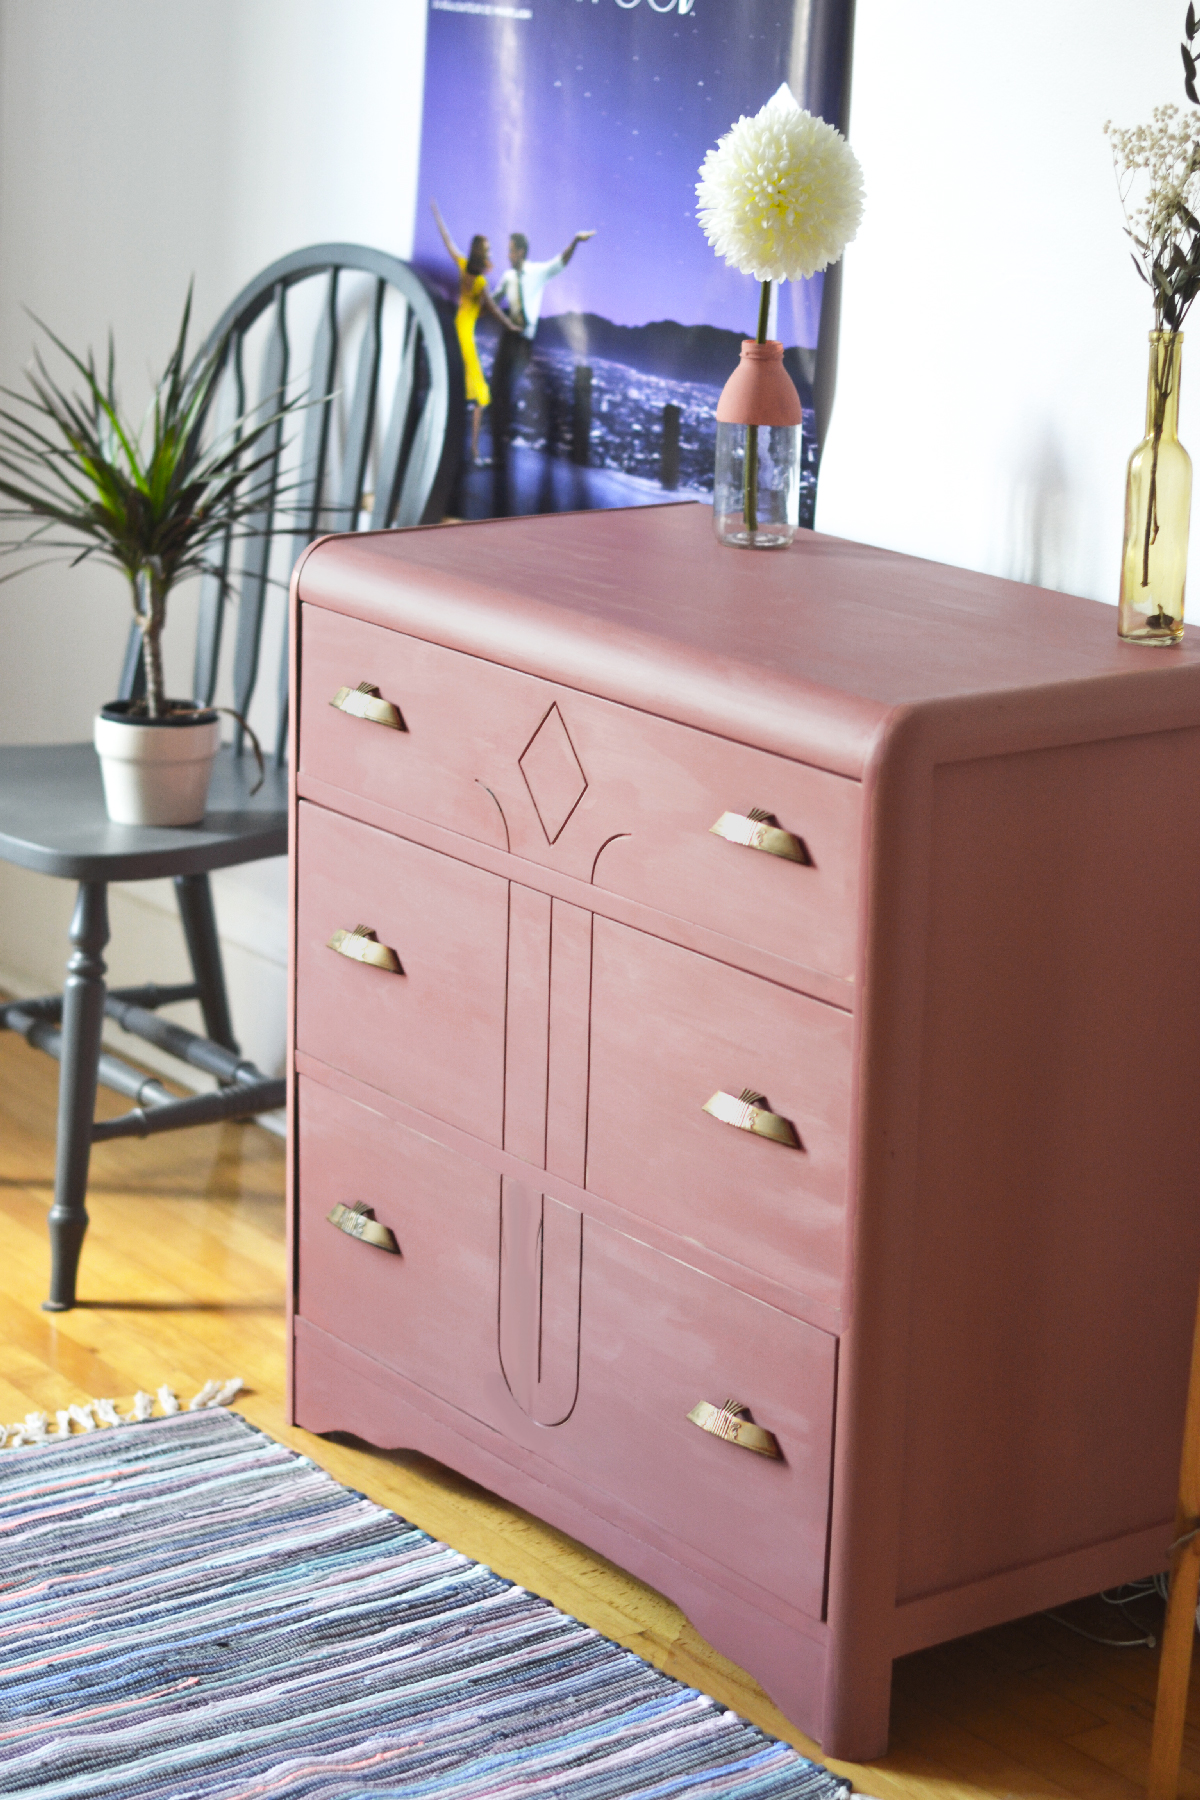 diy-meuble-chalkpaint-pink